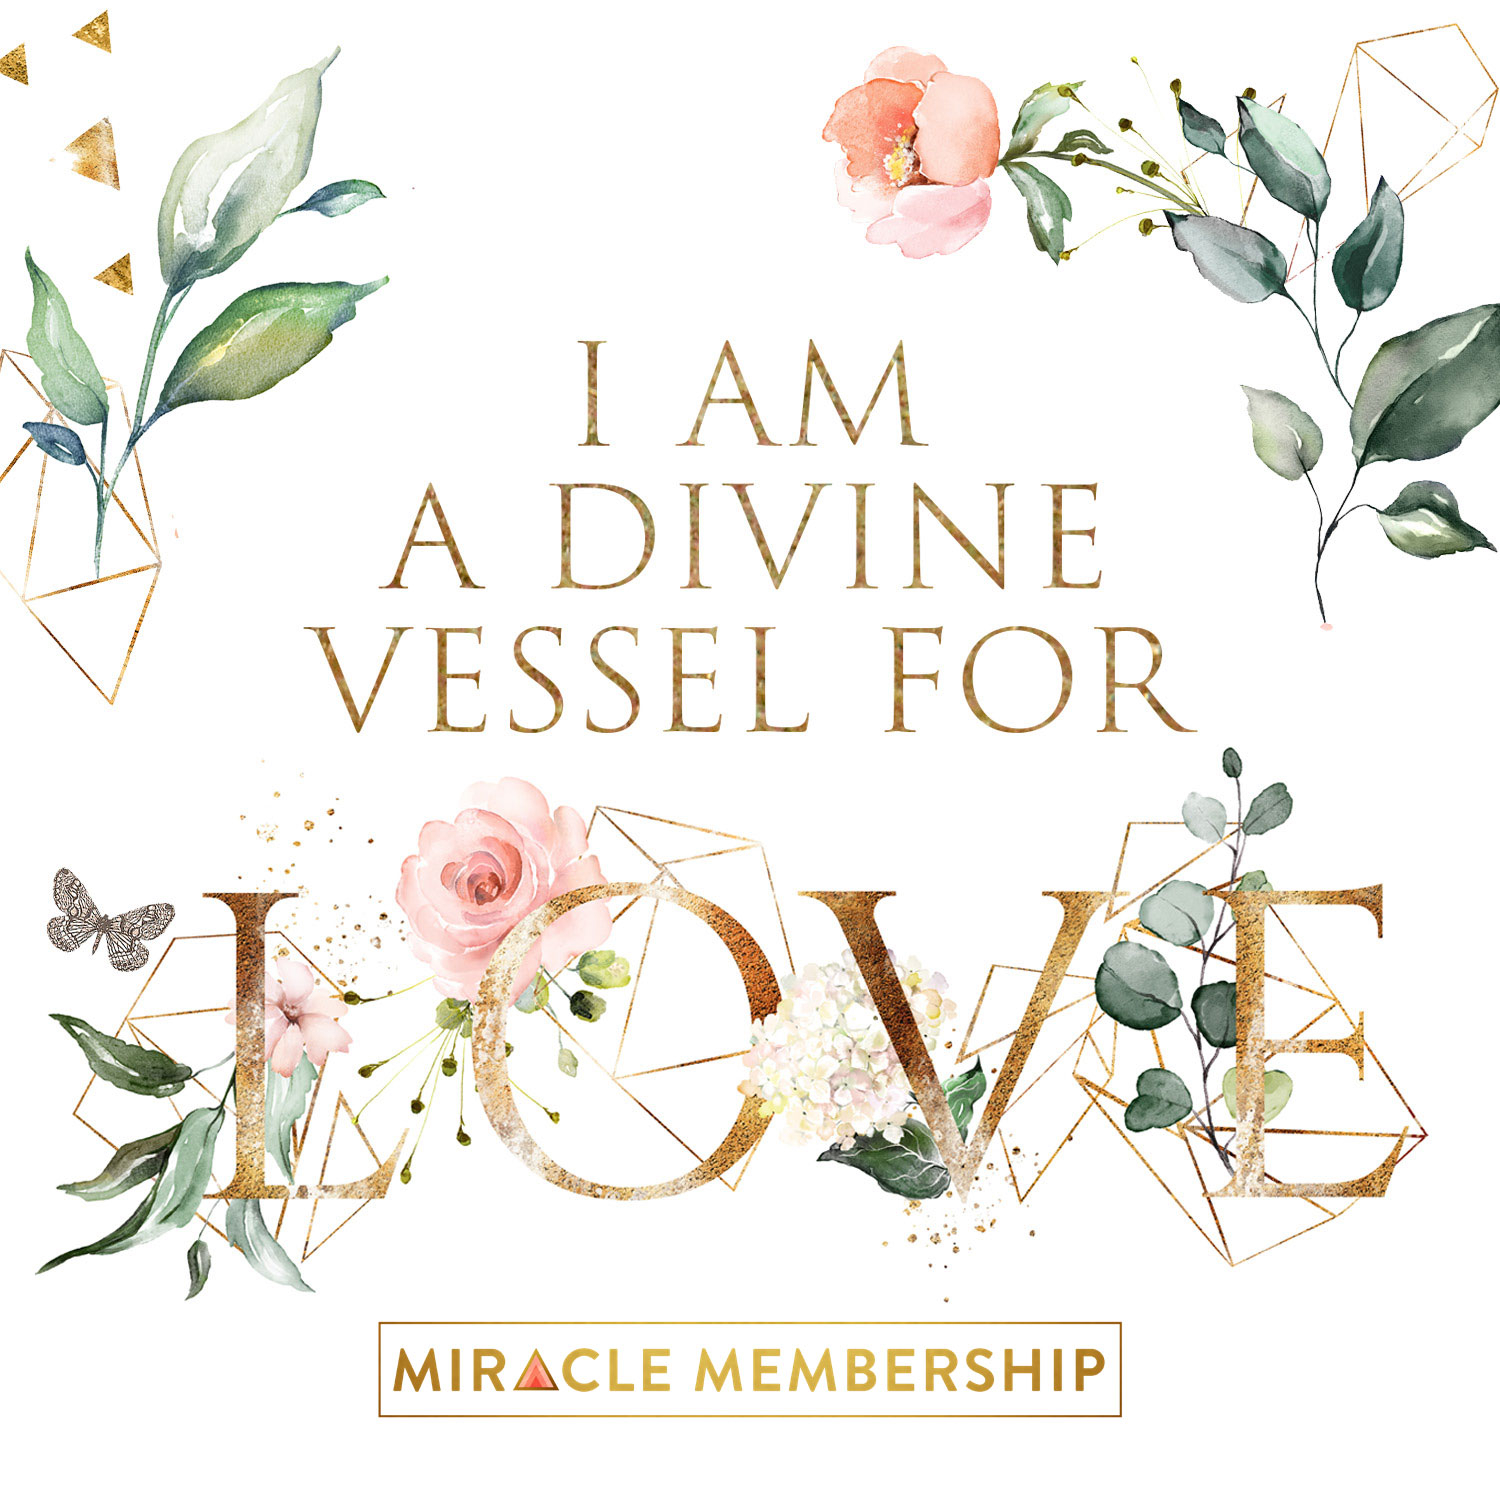 I am a divine vessel for love | Miracle Membership mantra